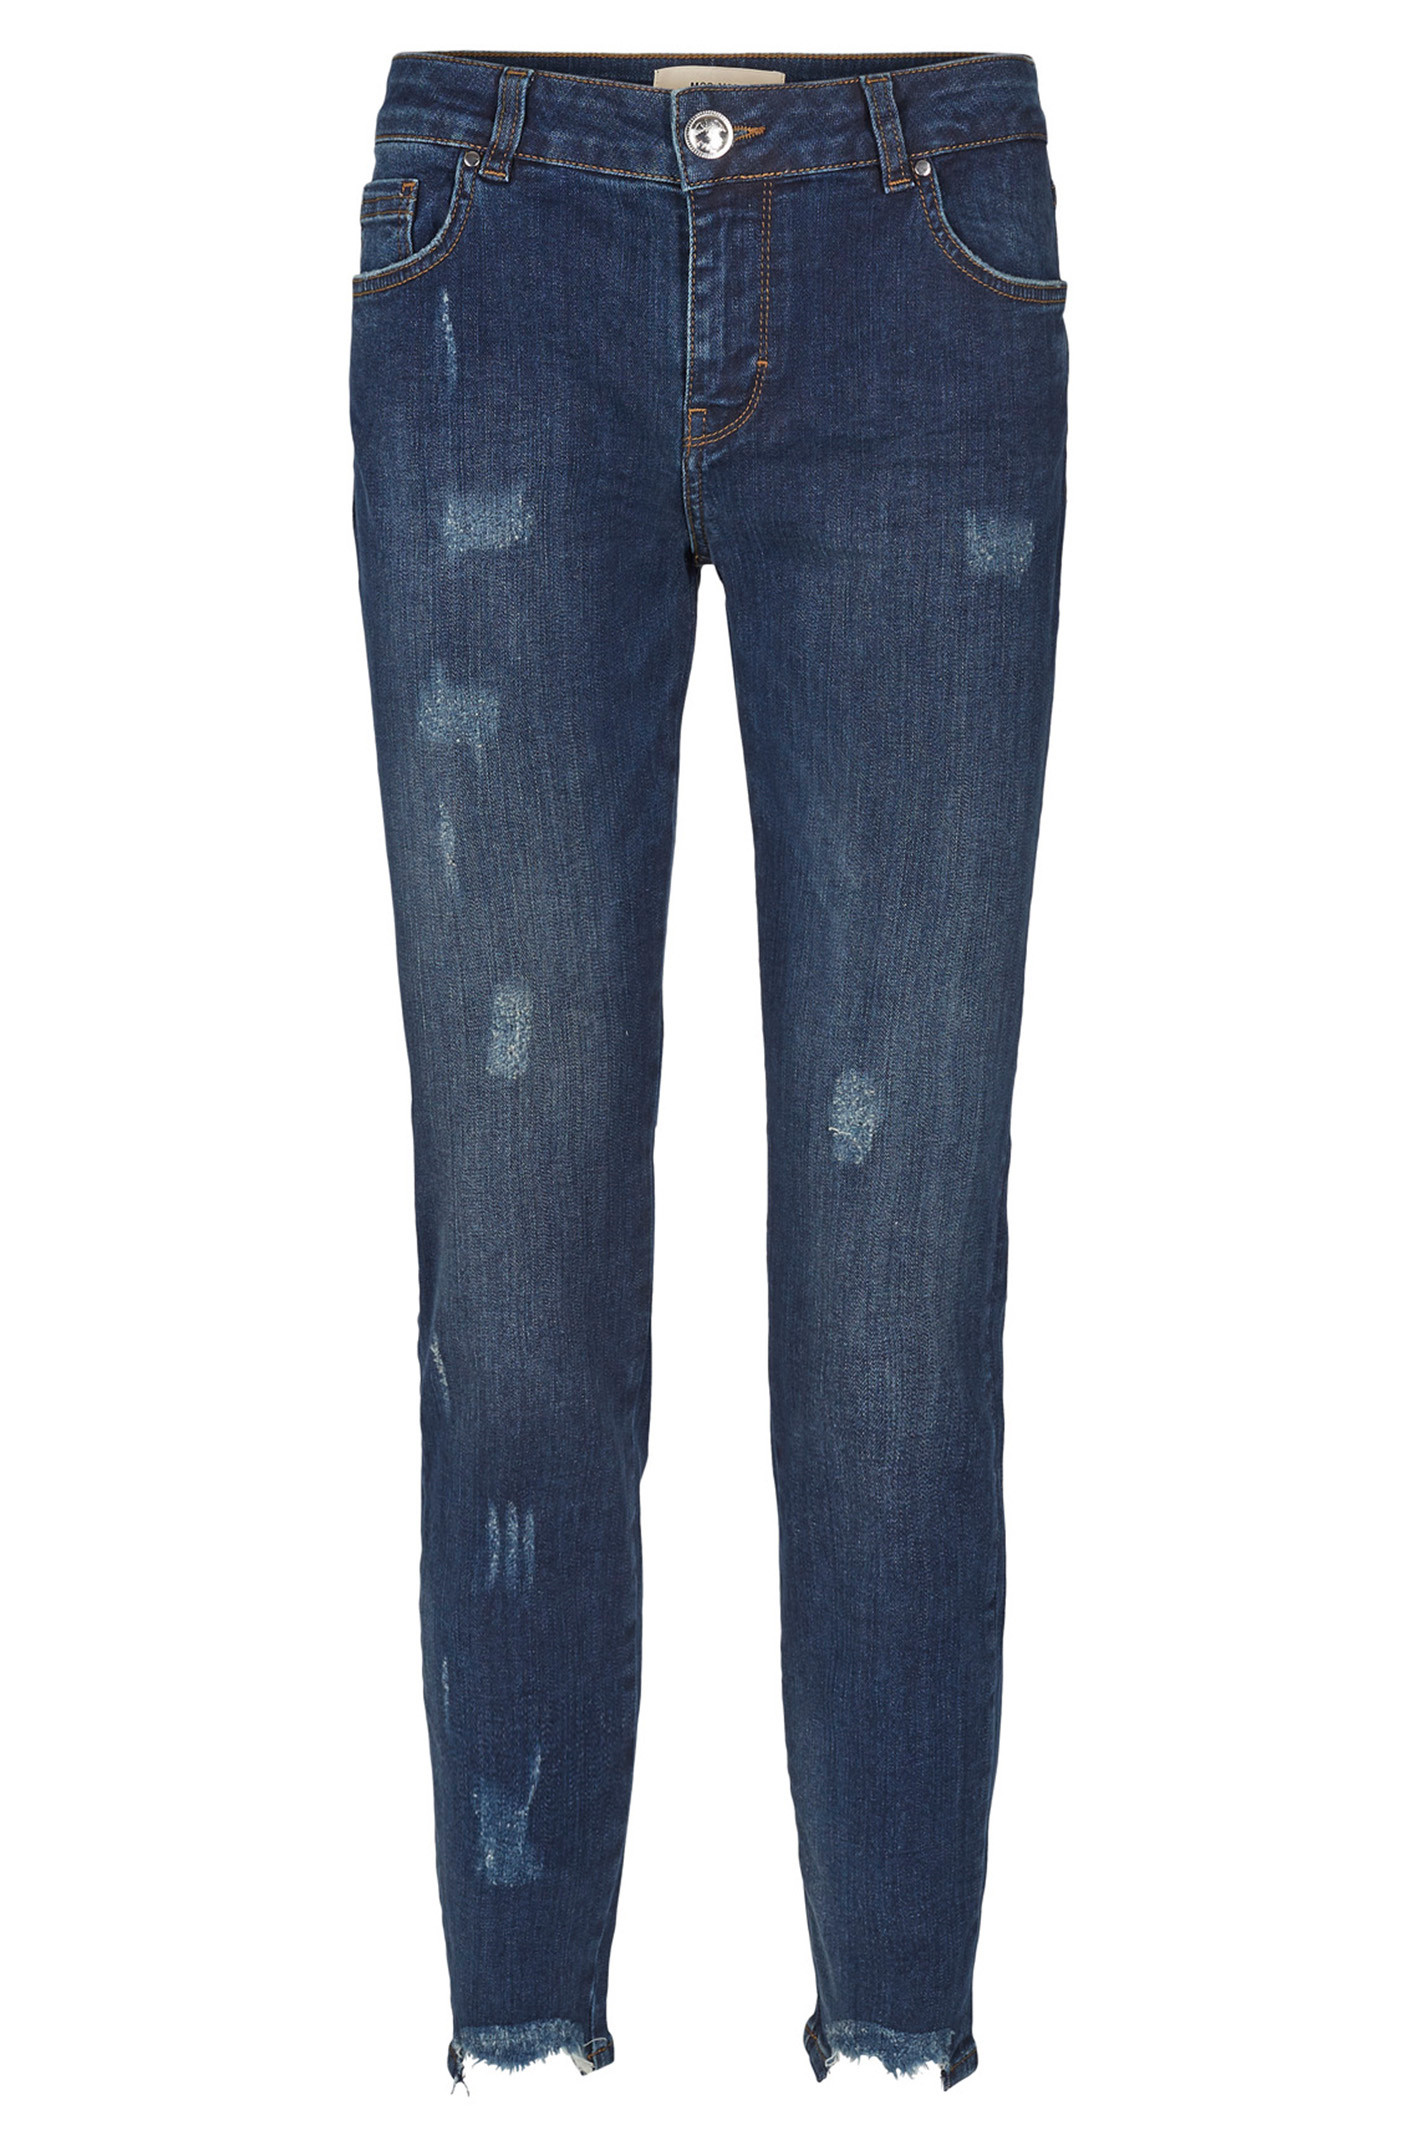 MOS MOSH SUMNER DECO 121811 Dark Blue Denim